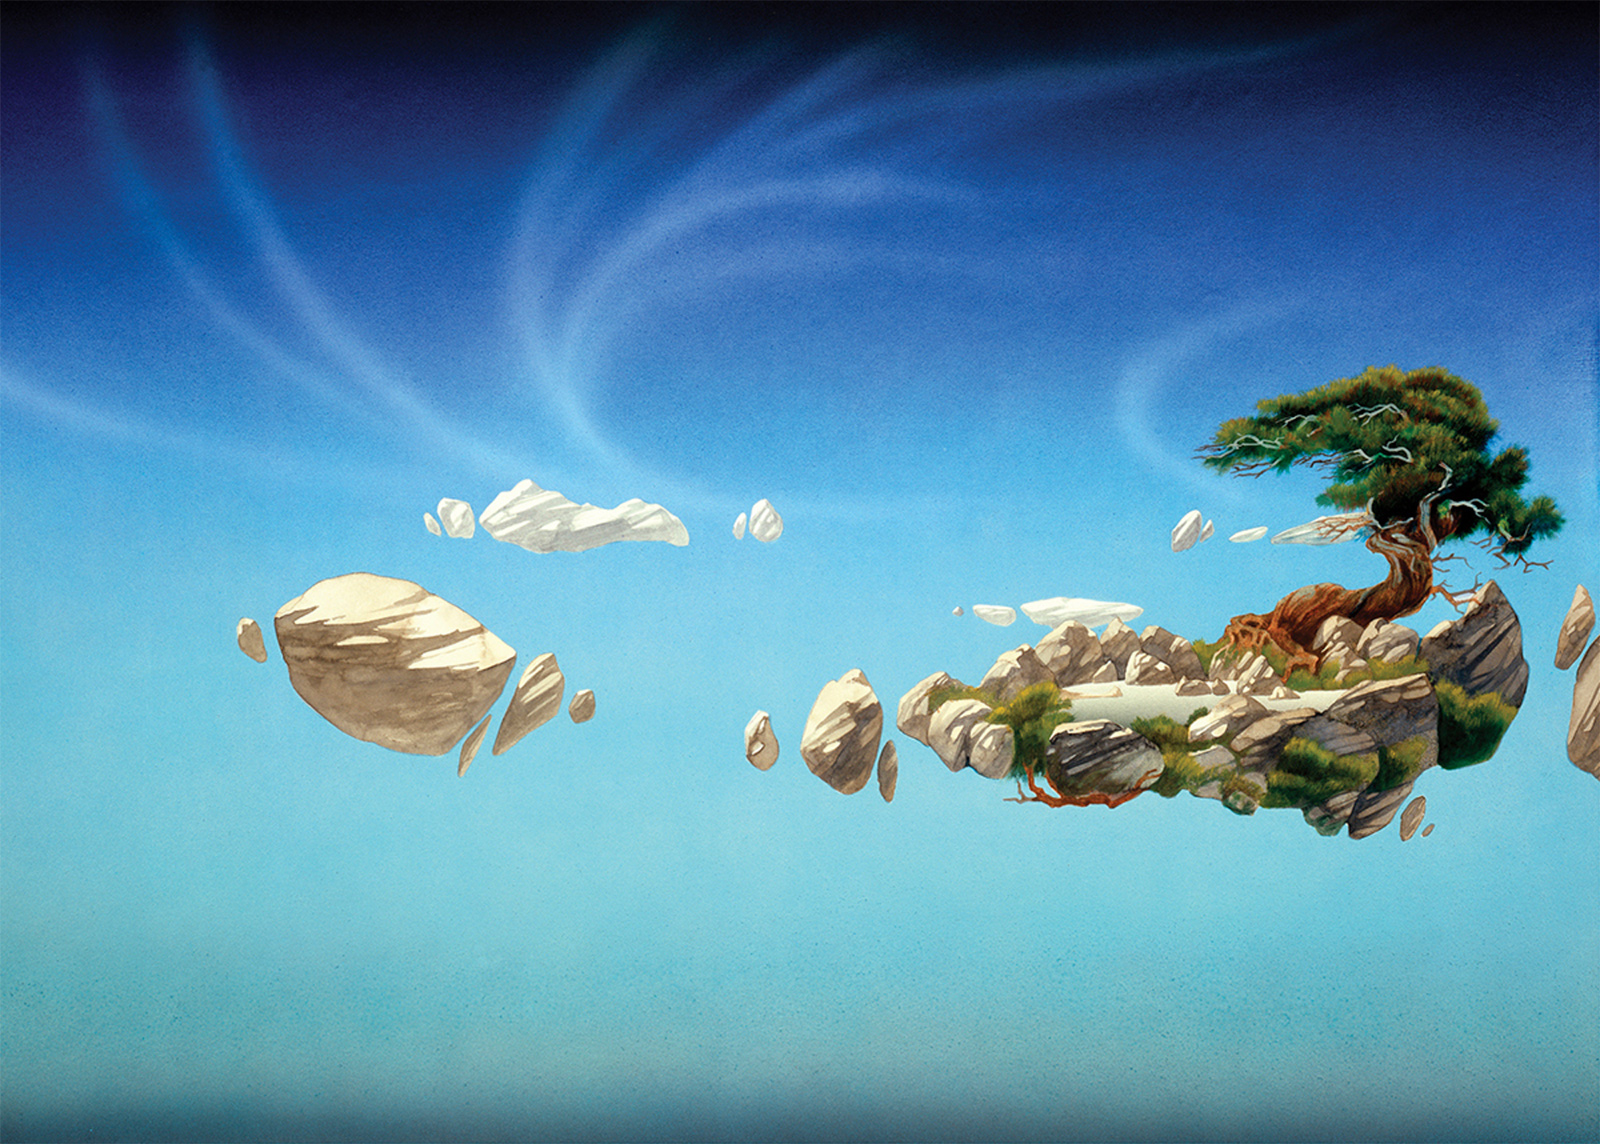 Roger Dean - The Flights of Icarus